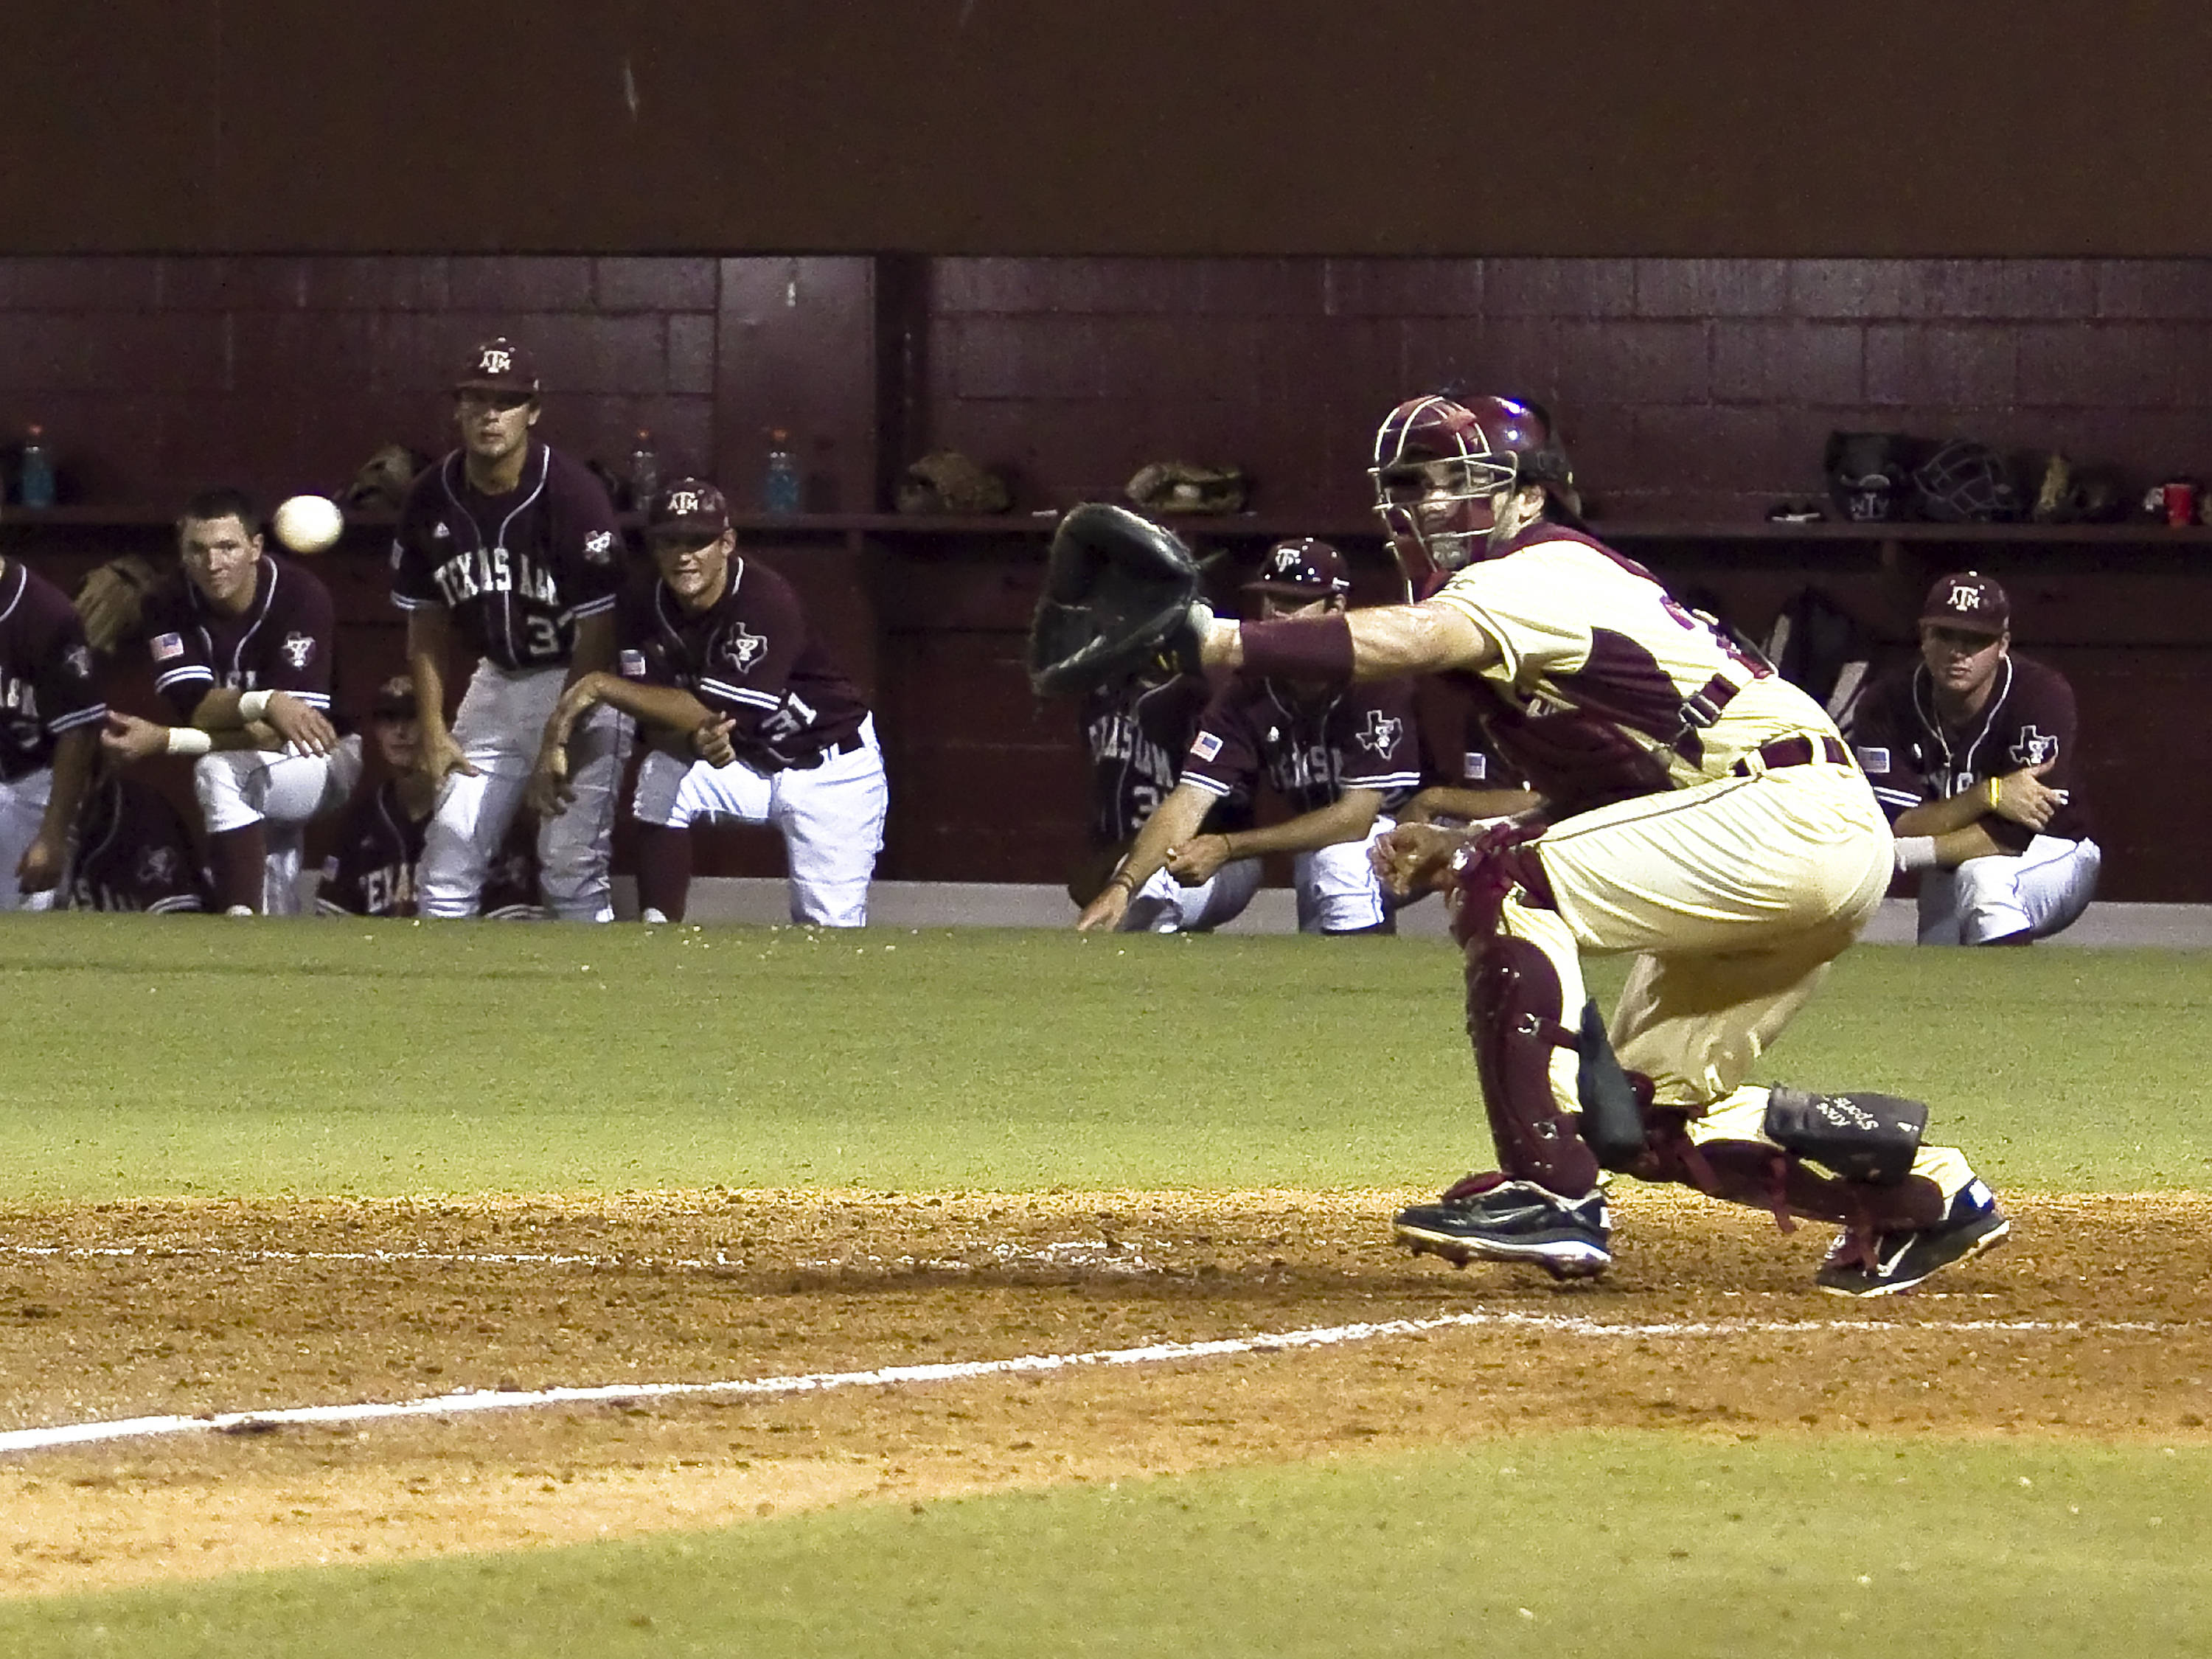 Catcher Rafael Lopez (29) about to receive a throw from Sherman Johnson to record a force-out at home.